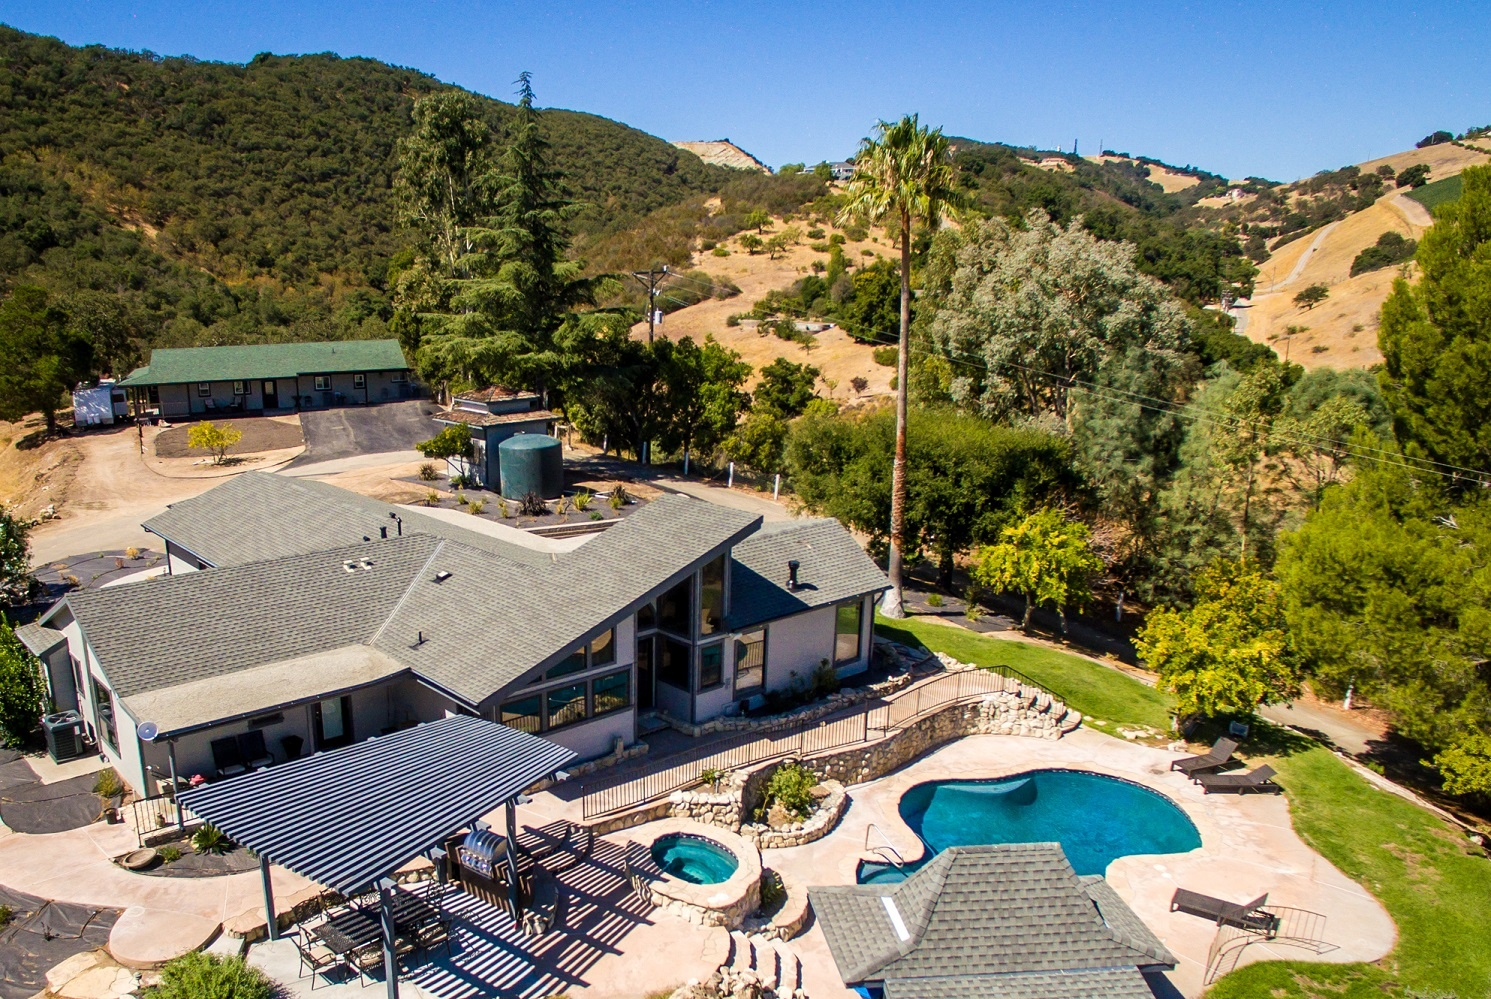 Paso Robles Vacation Rentals automated property operations with Breezeway